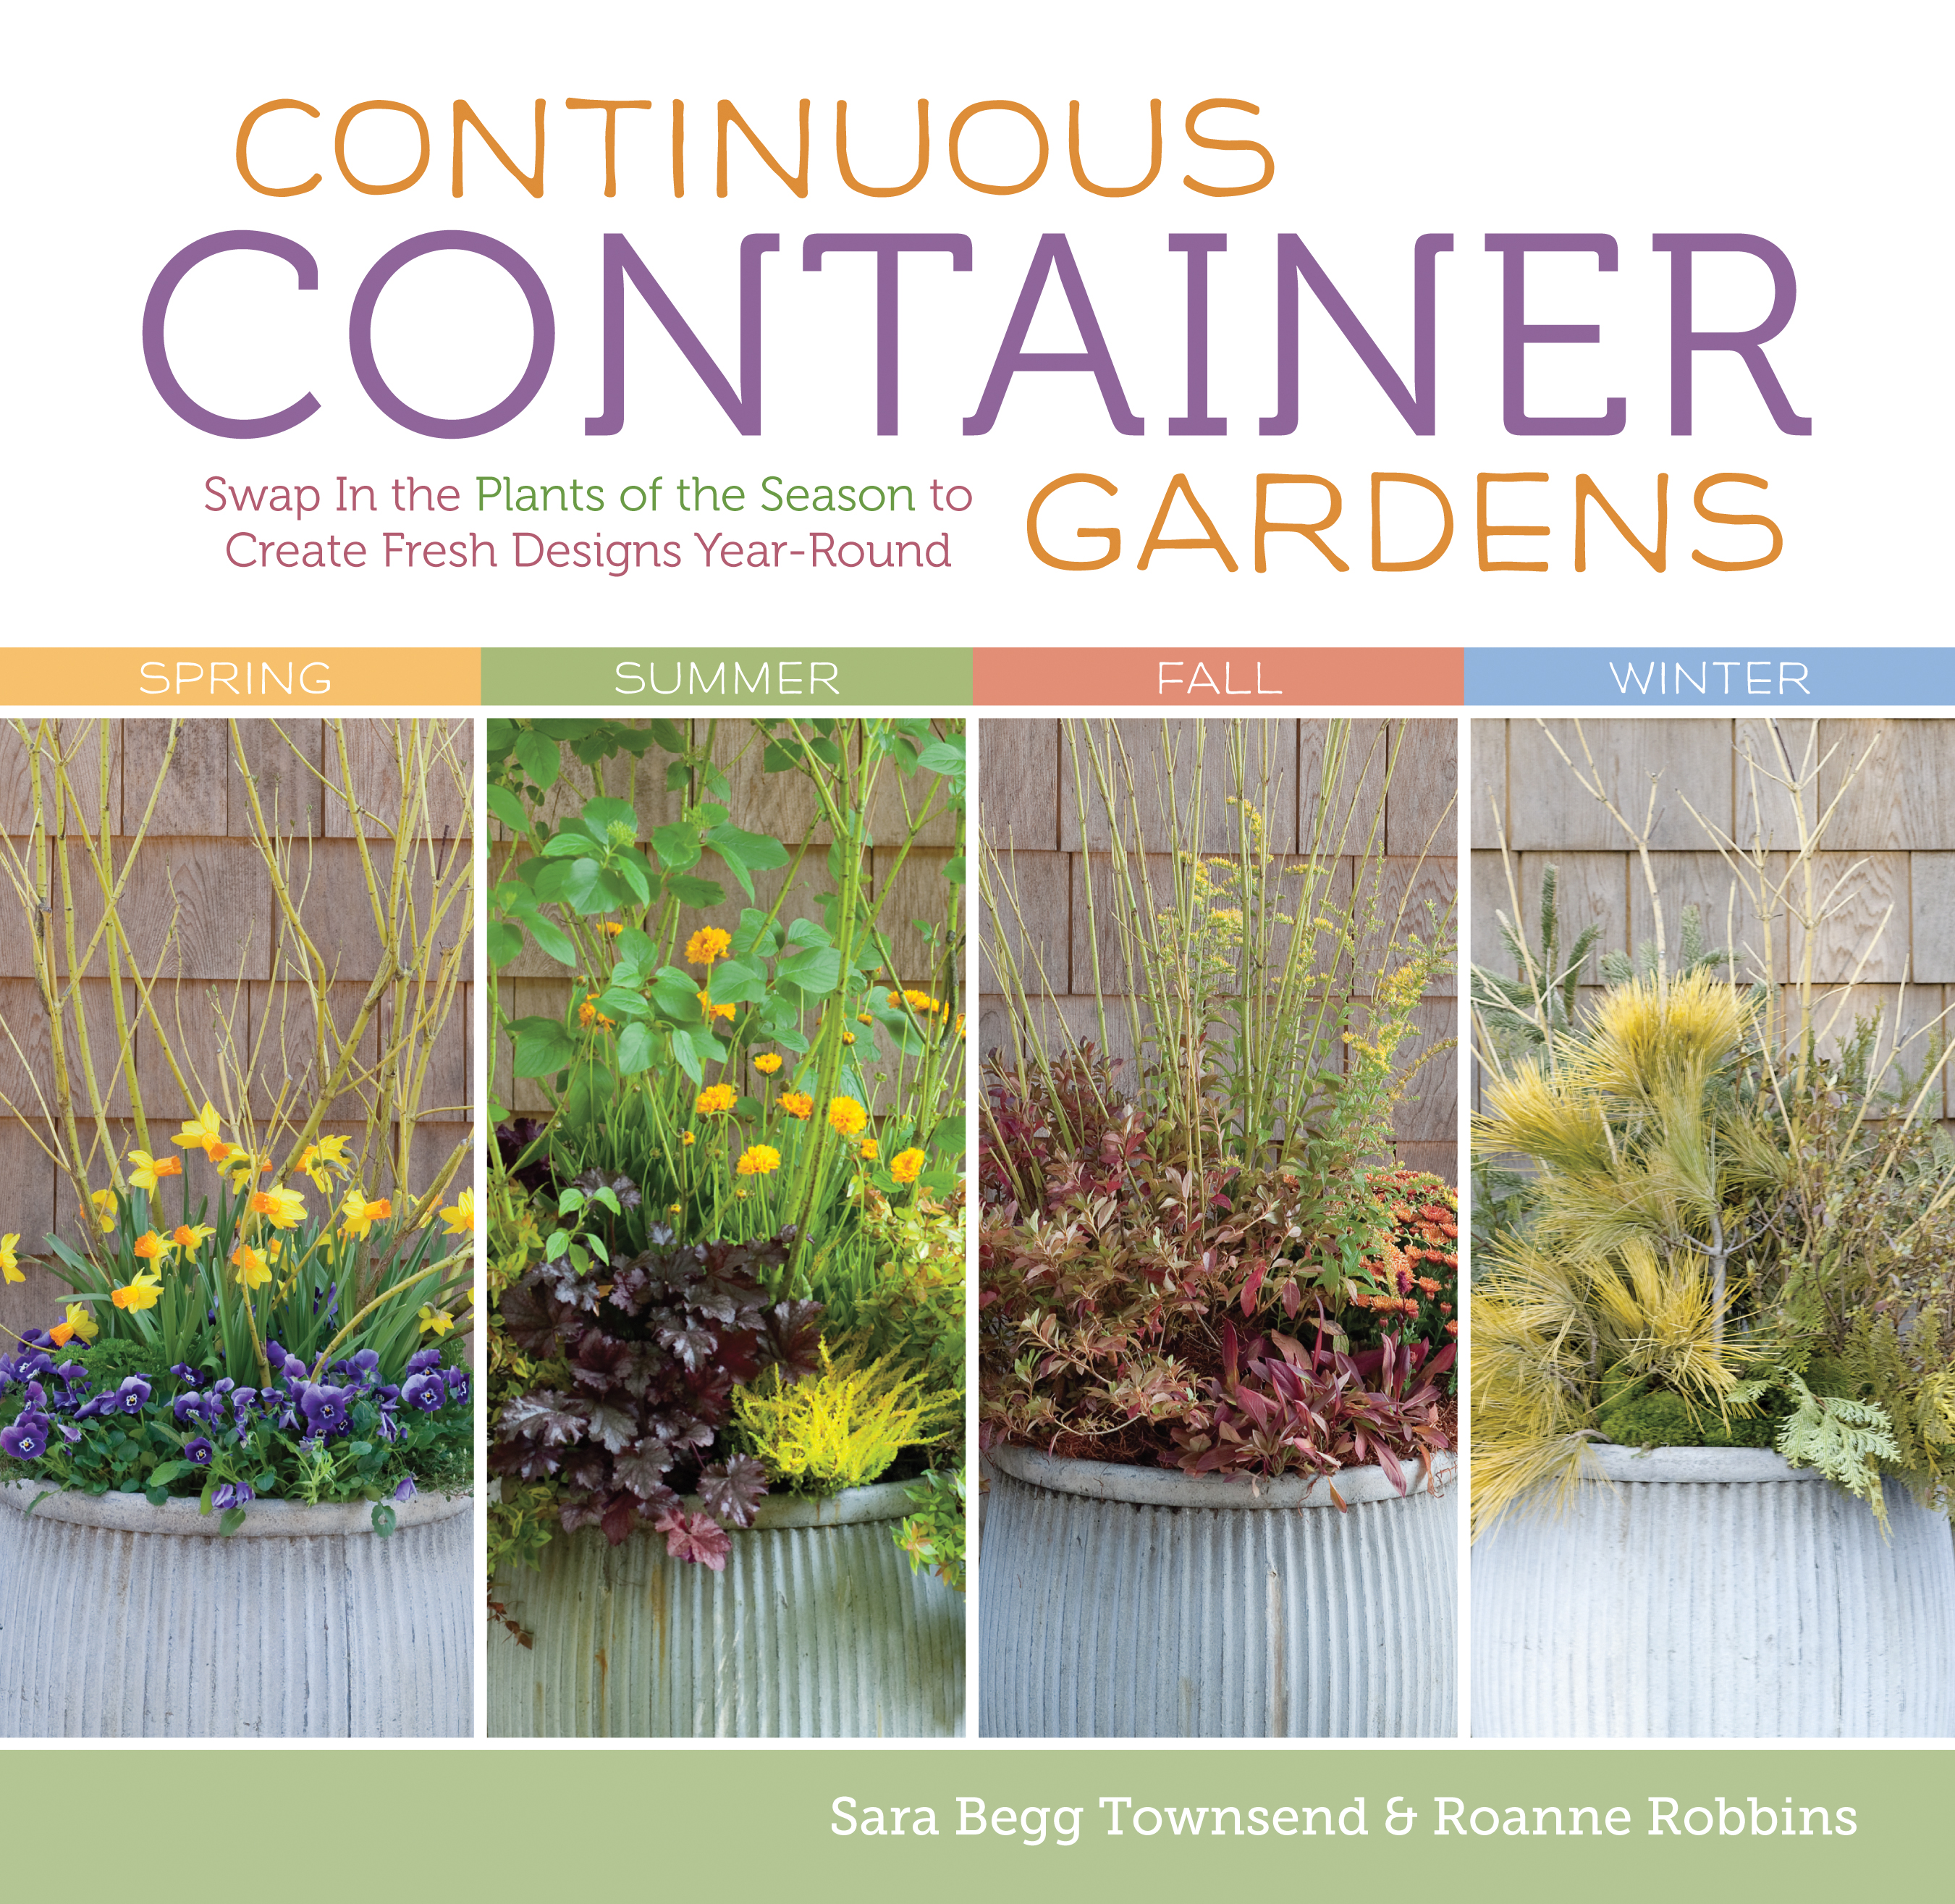 Continuous Container Gardens Swap In the Plants of the Season to Create Fresh Designs Year-Round